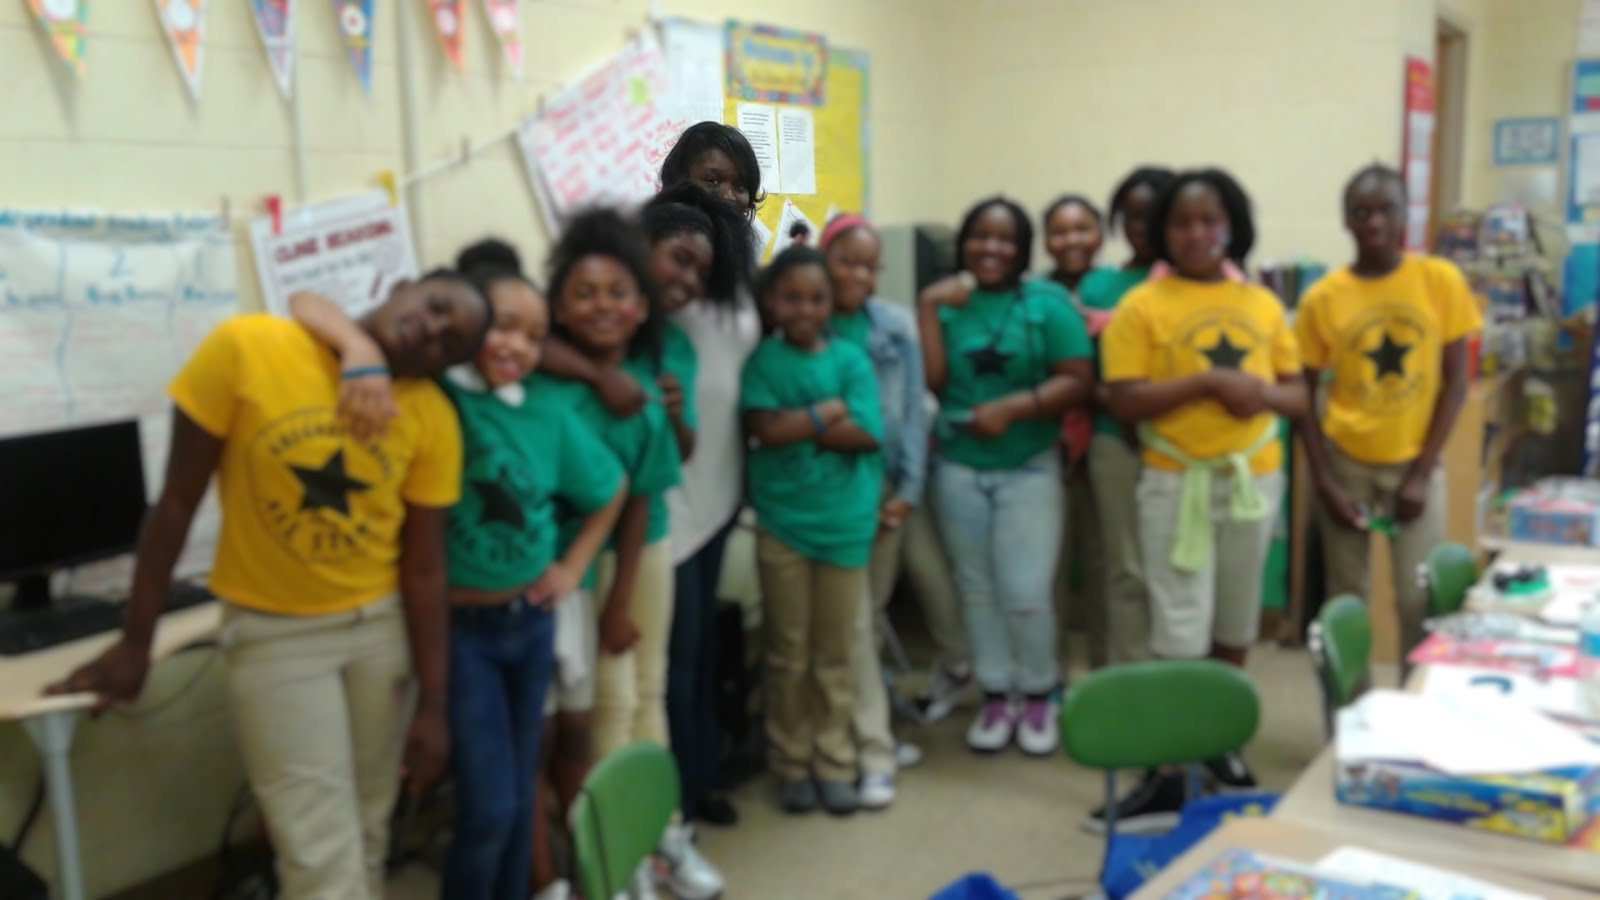 CCFA Trenton Children's Book Festival at Gregory Elementary- 4th Class